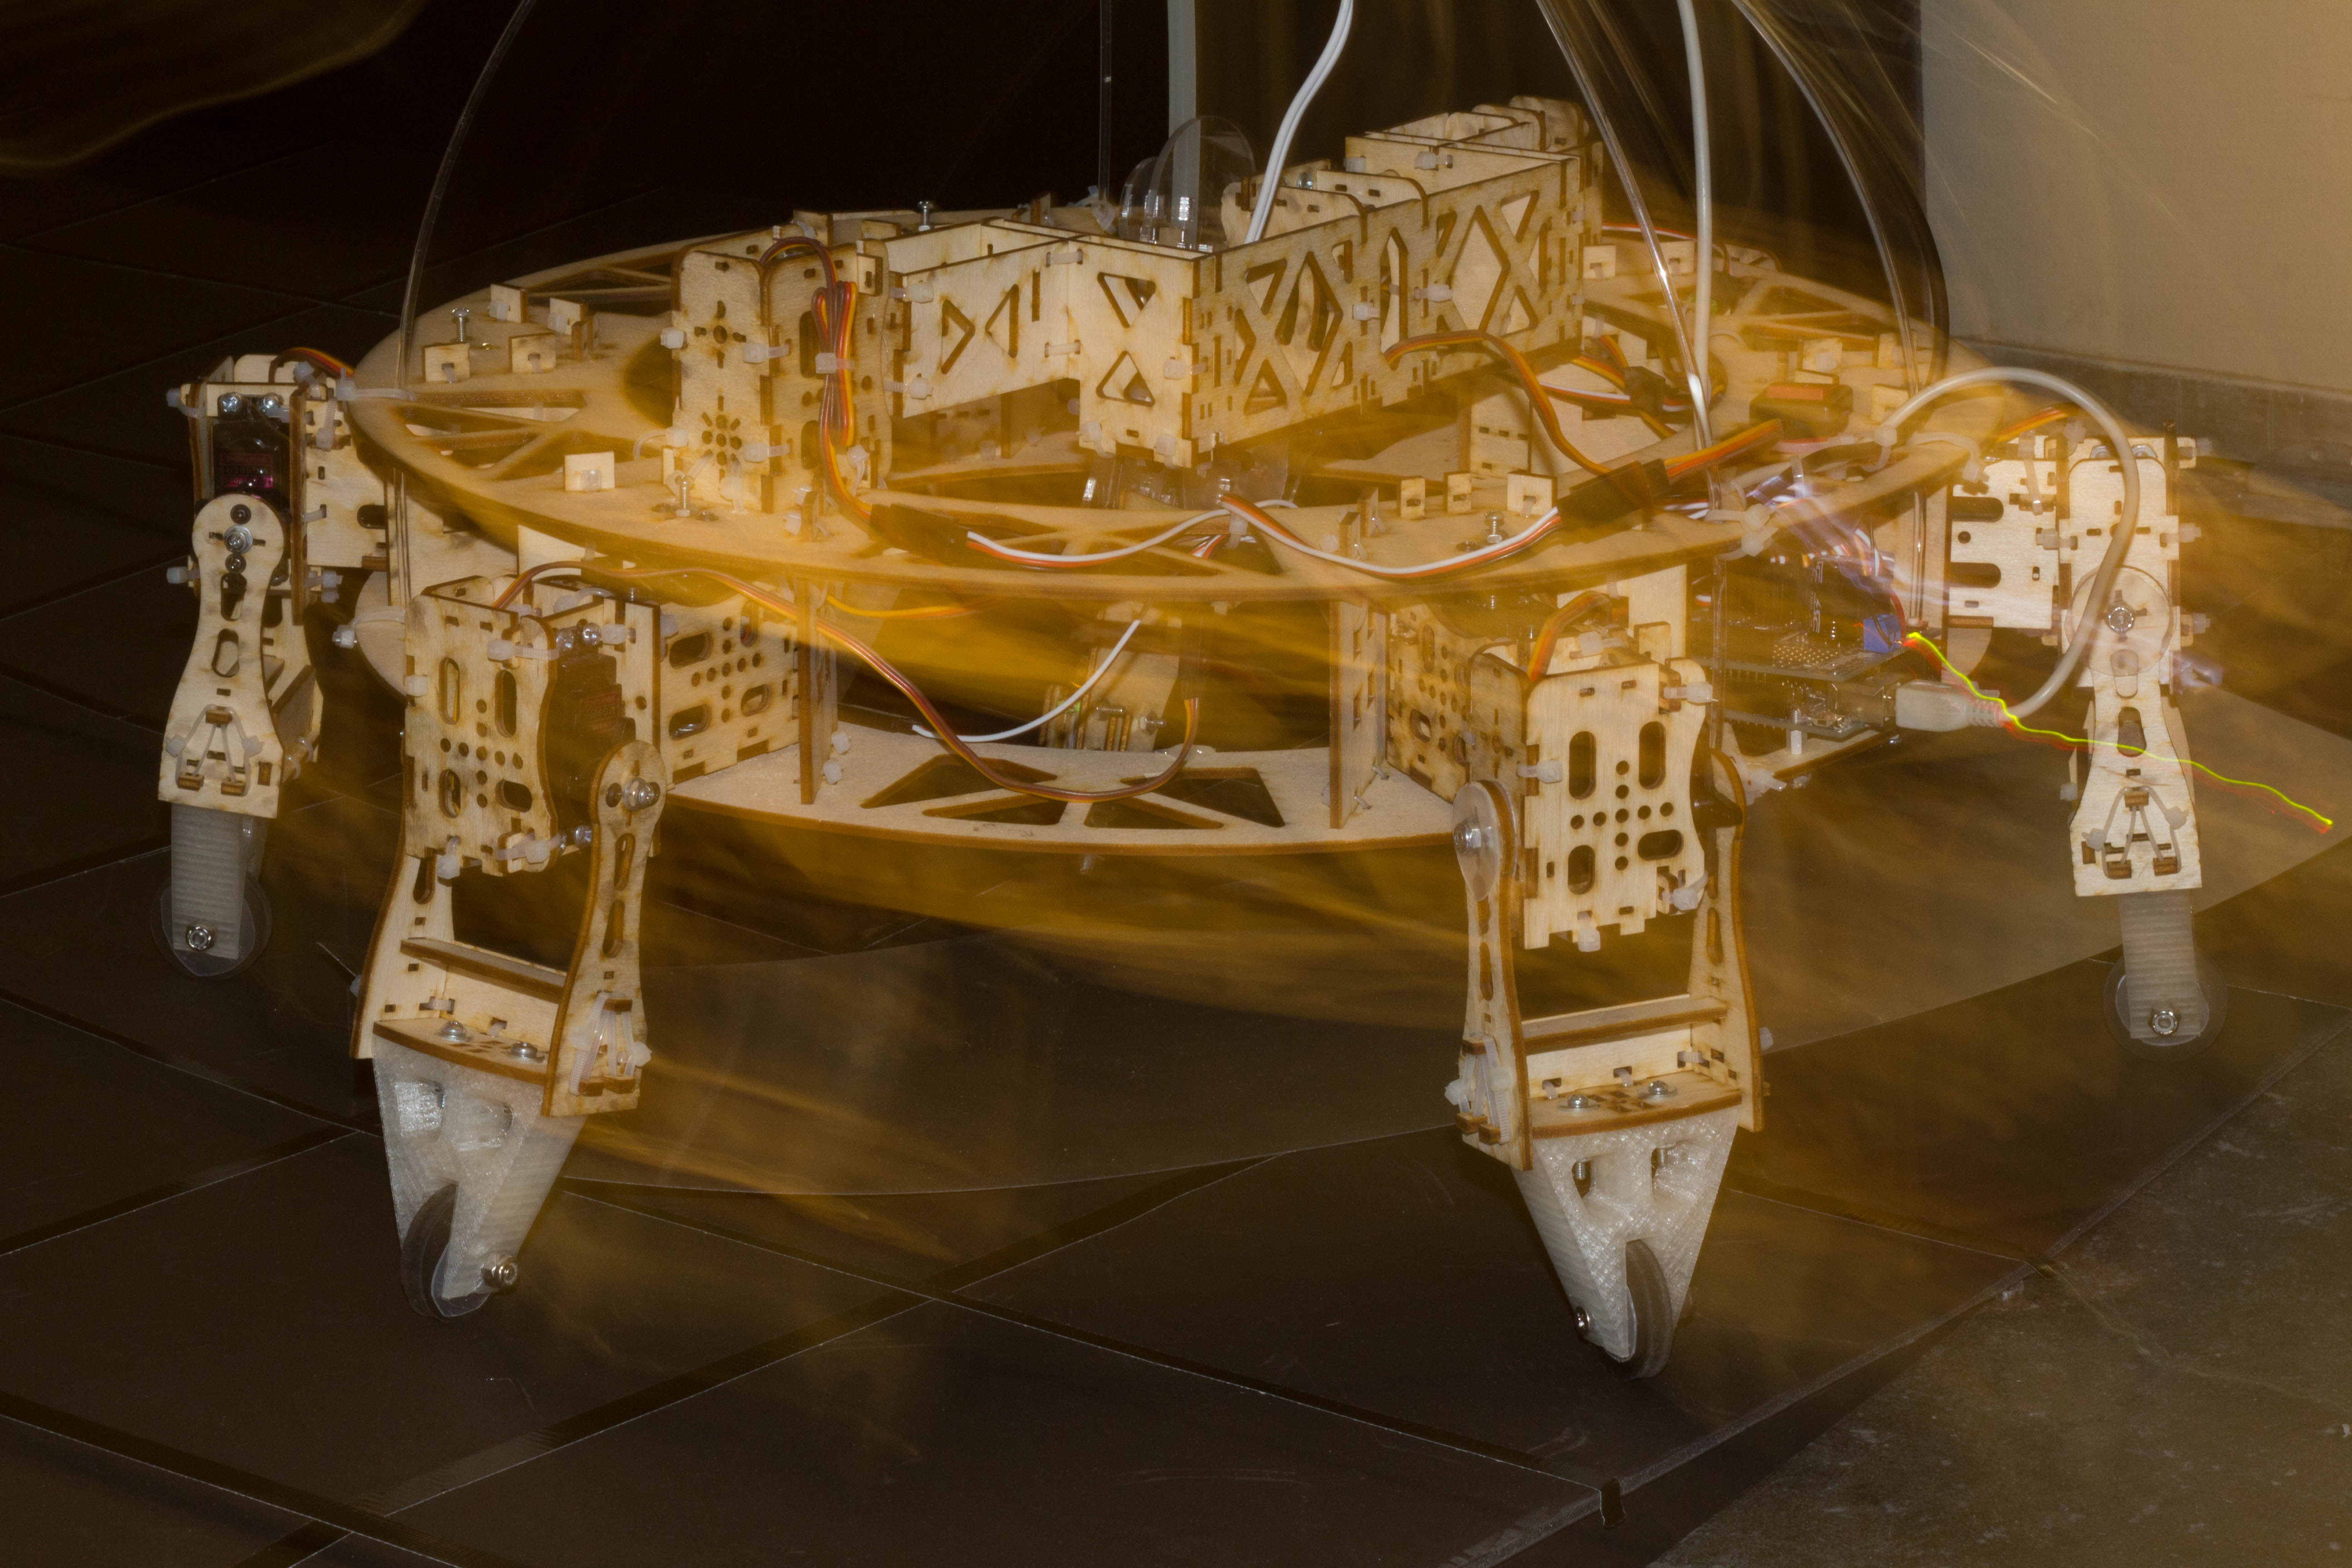 Picture of Geoweaver: a Walking 3D Printer Hexapod